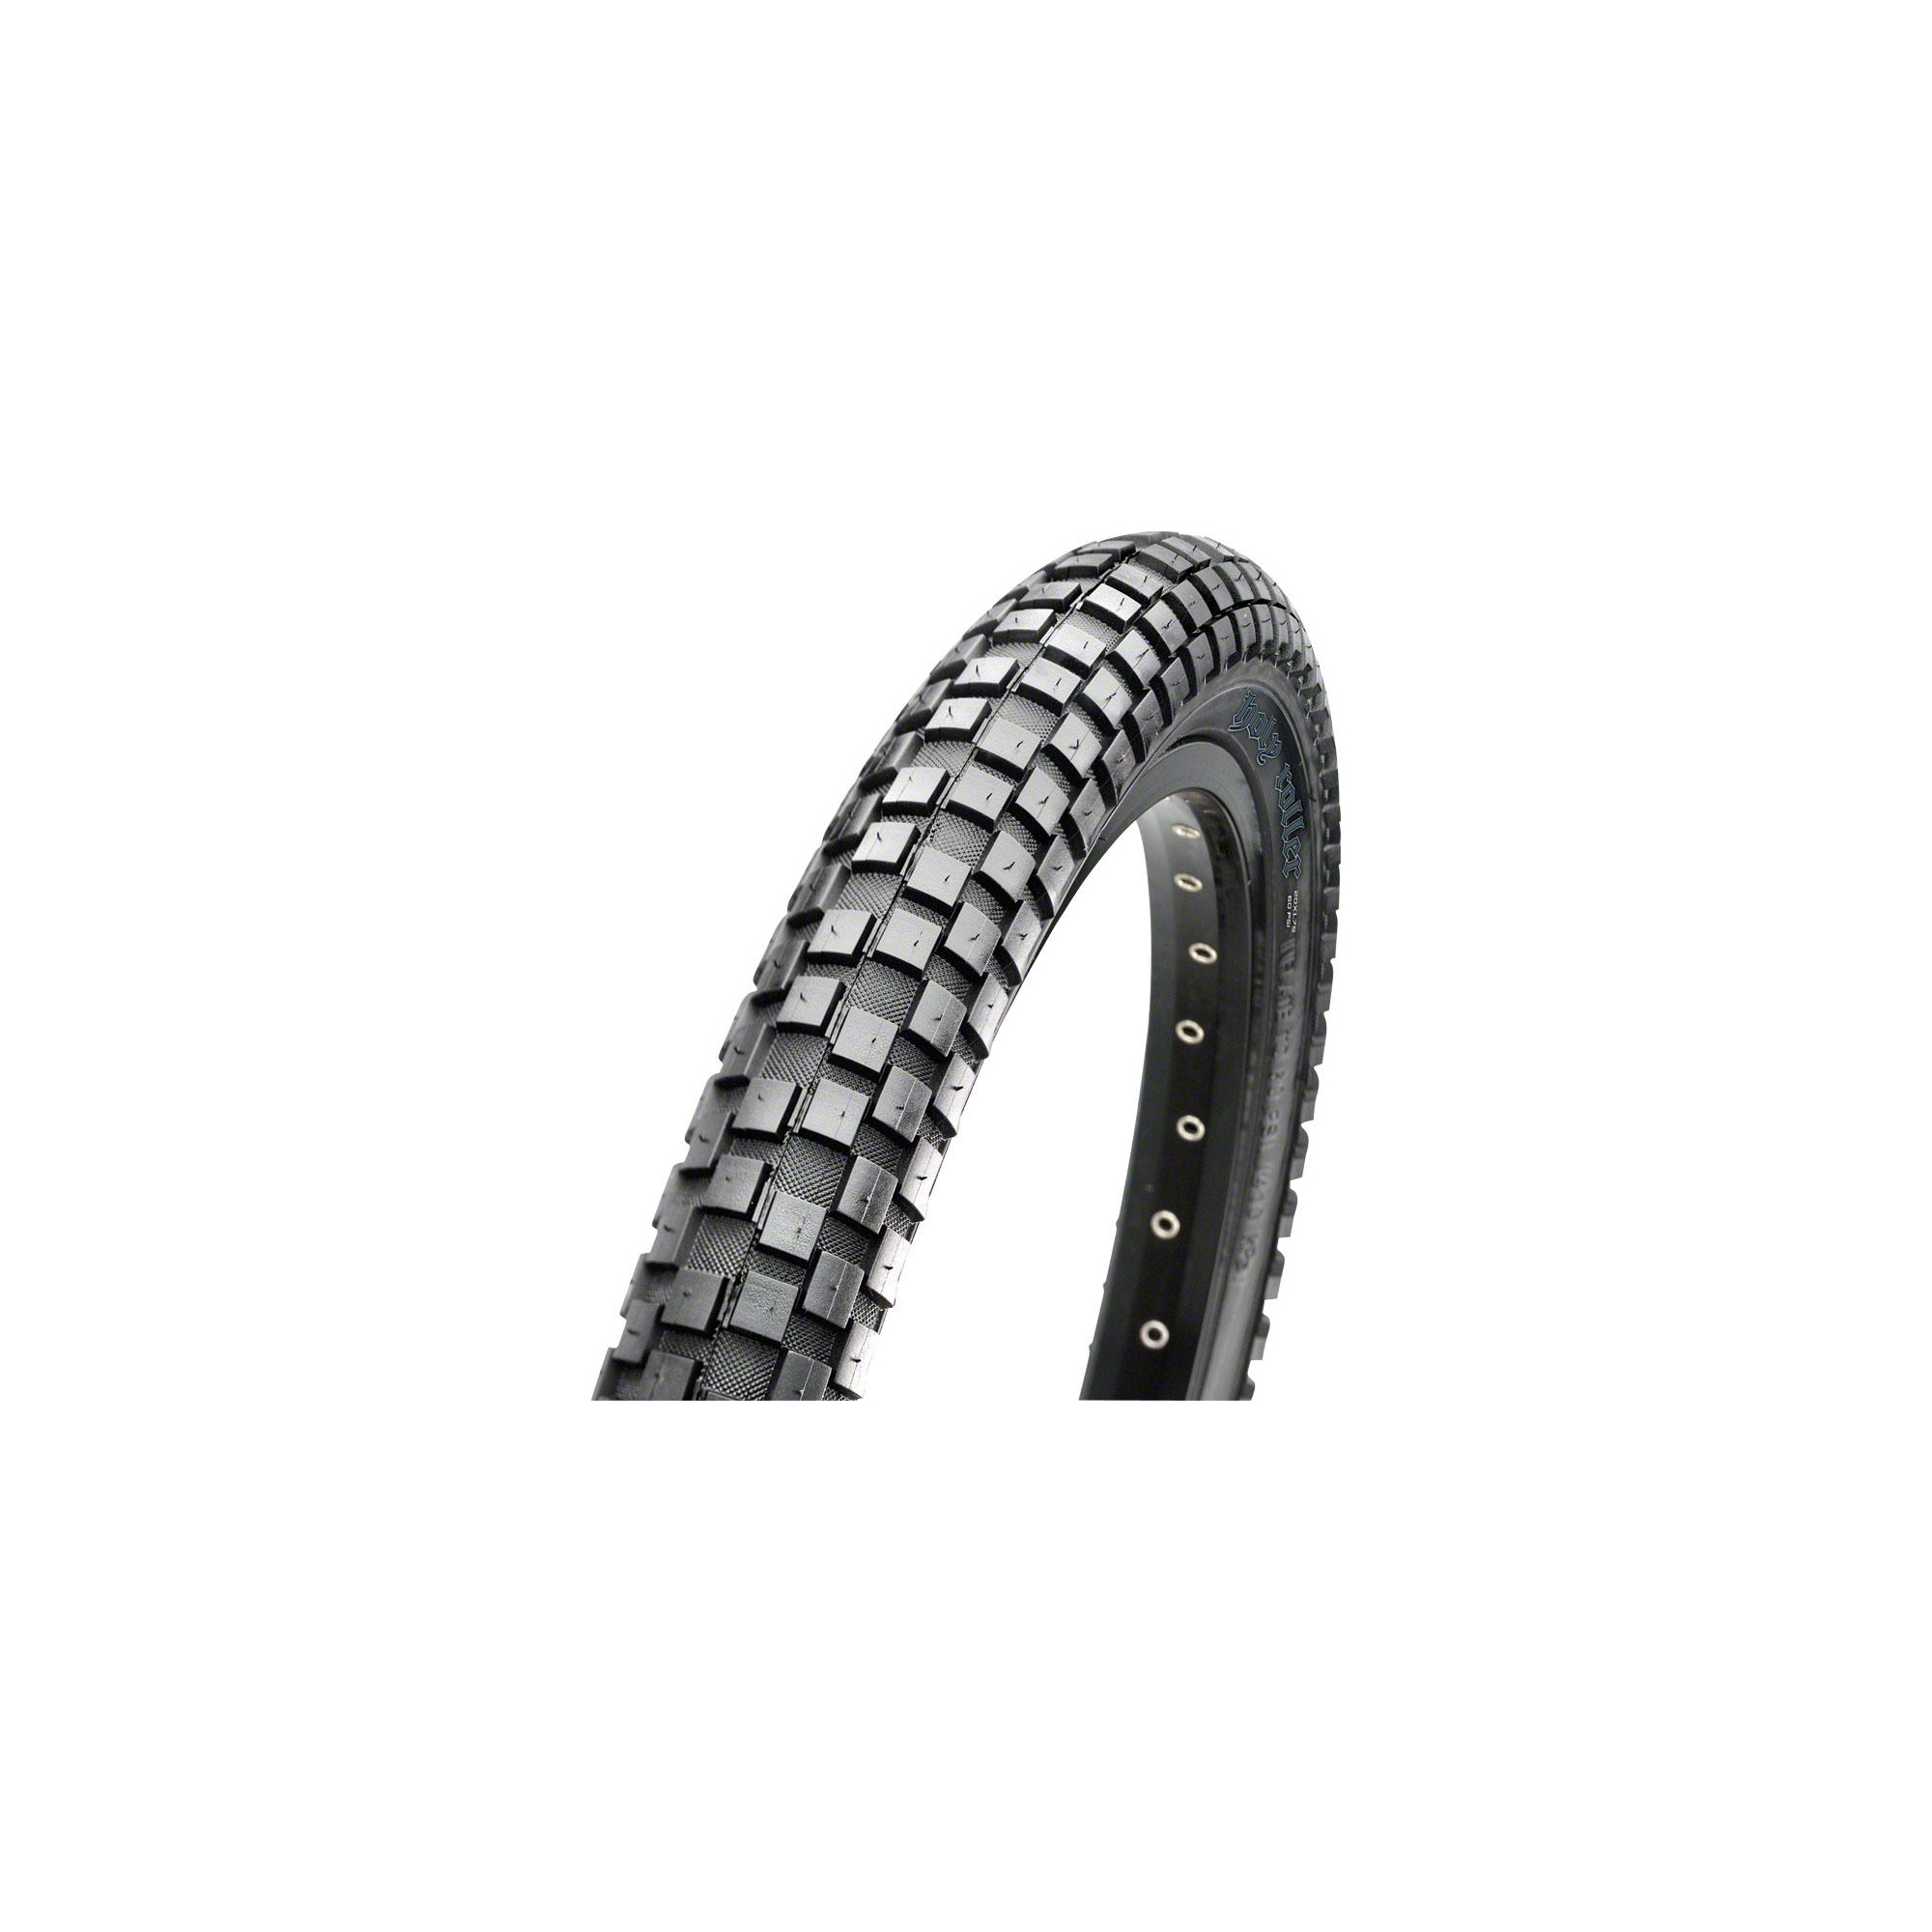 Steel Maxxis Holy Roller 26 x 2.40 Tire Single Compound 60tpi